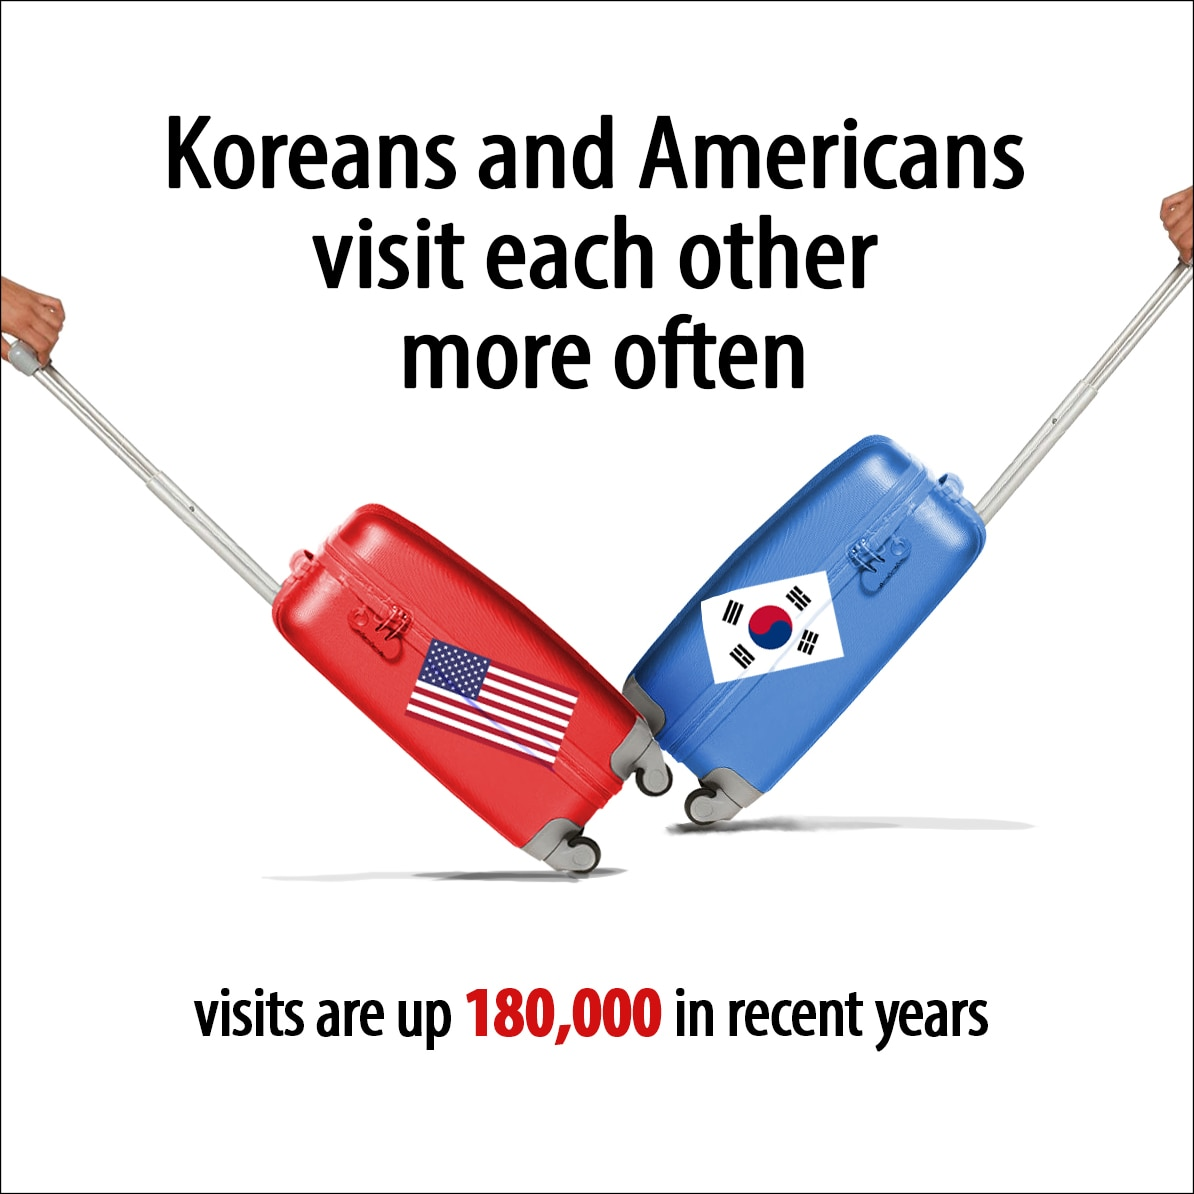 Two rolling suitcases with U.S. and South Korean flags